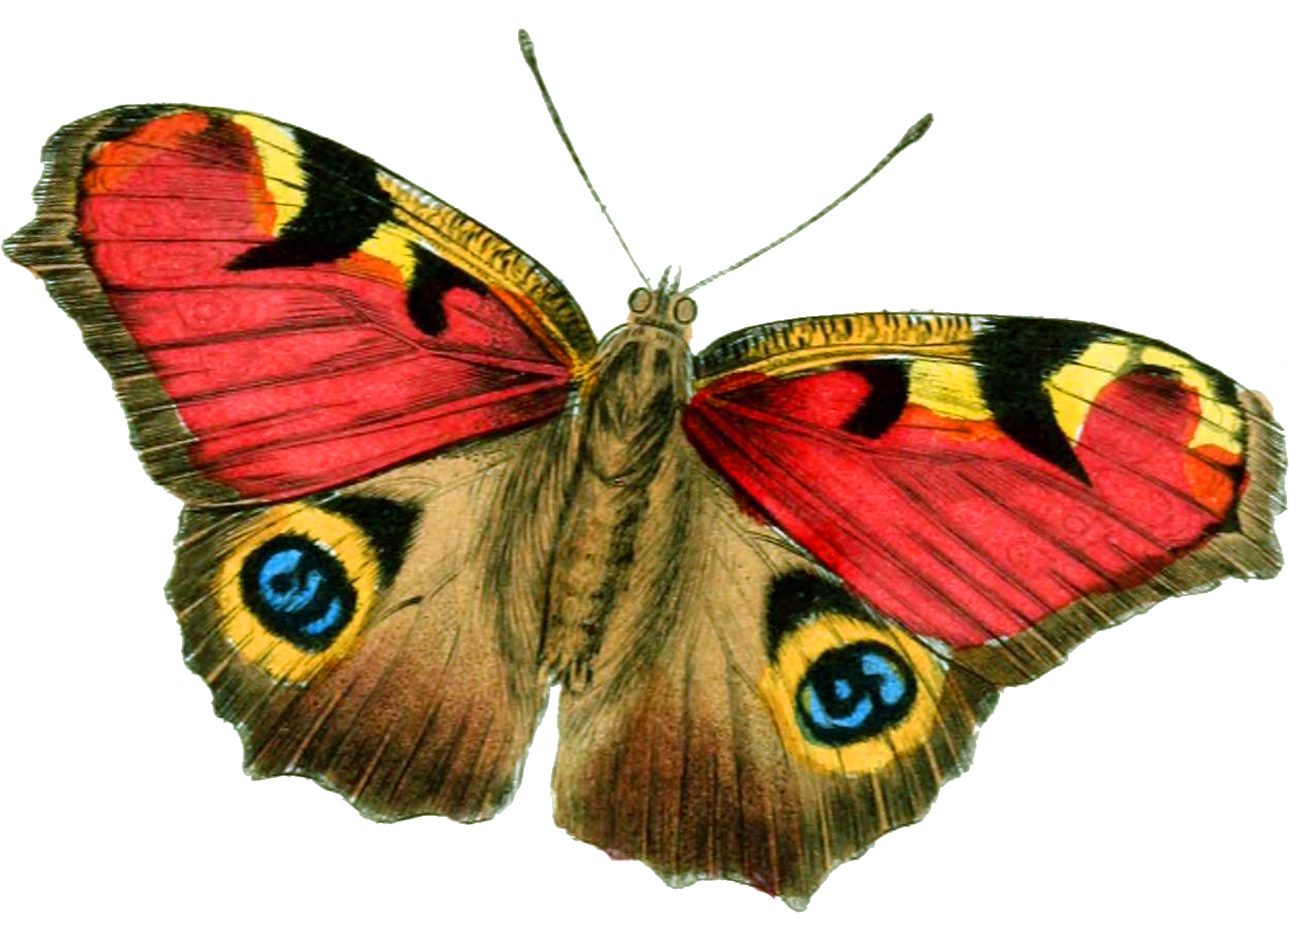 Big Explosion Png Png Image Purepng: Butterfly PNG Image - PurePNG